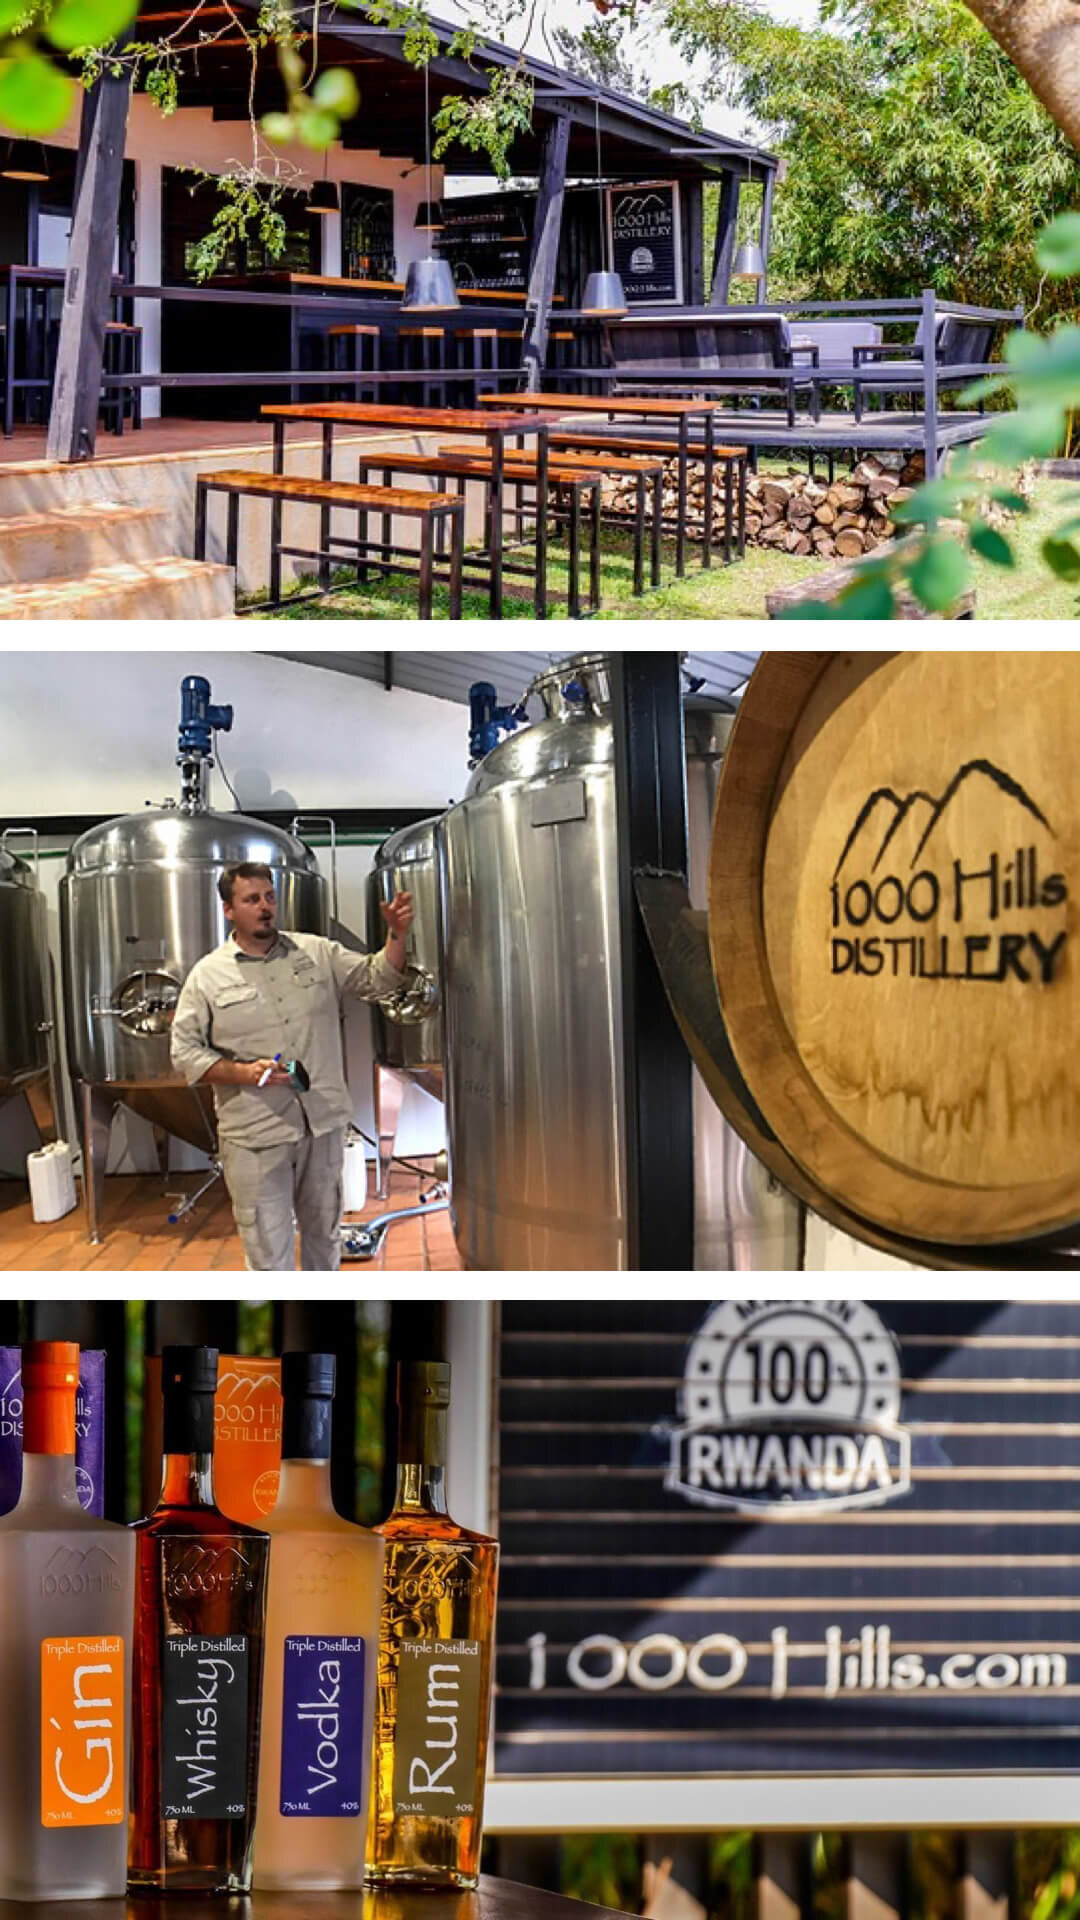 27.Take a tour of 1000 Hills Distillery